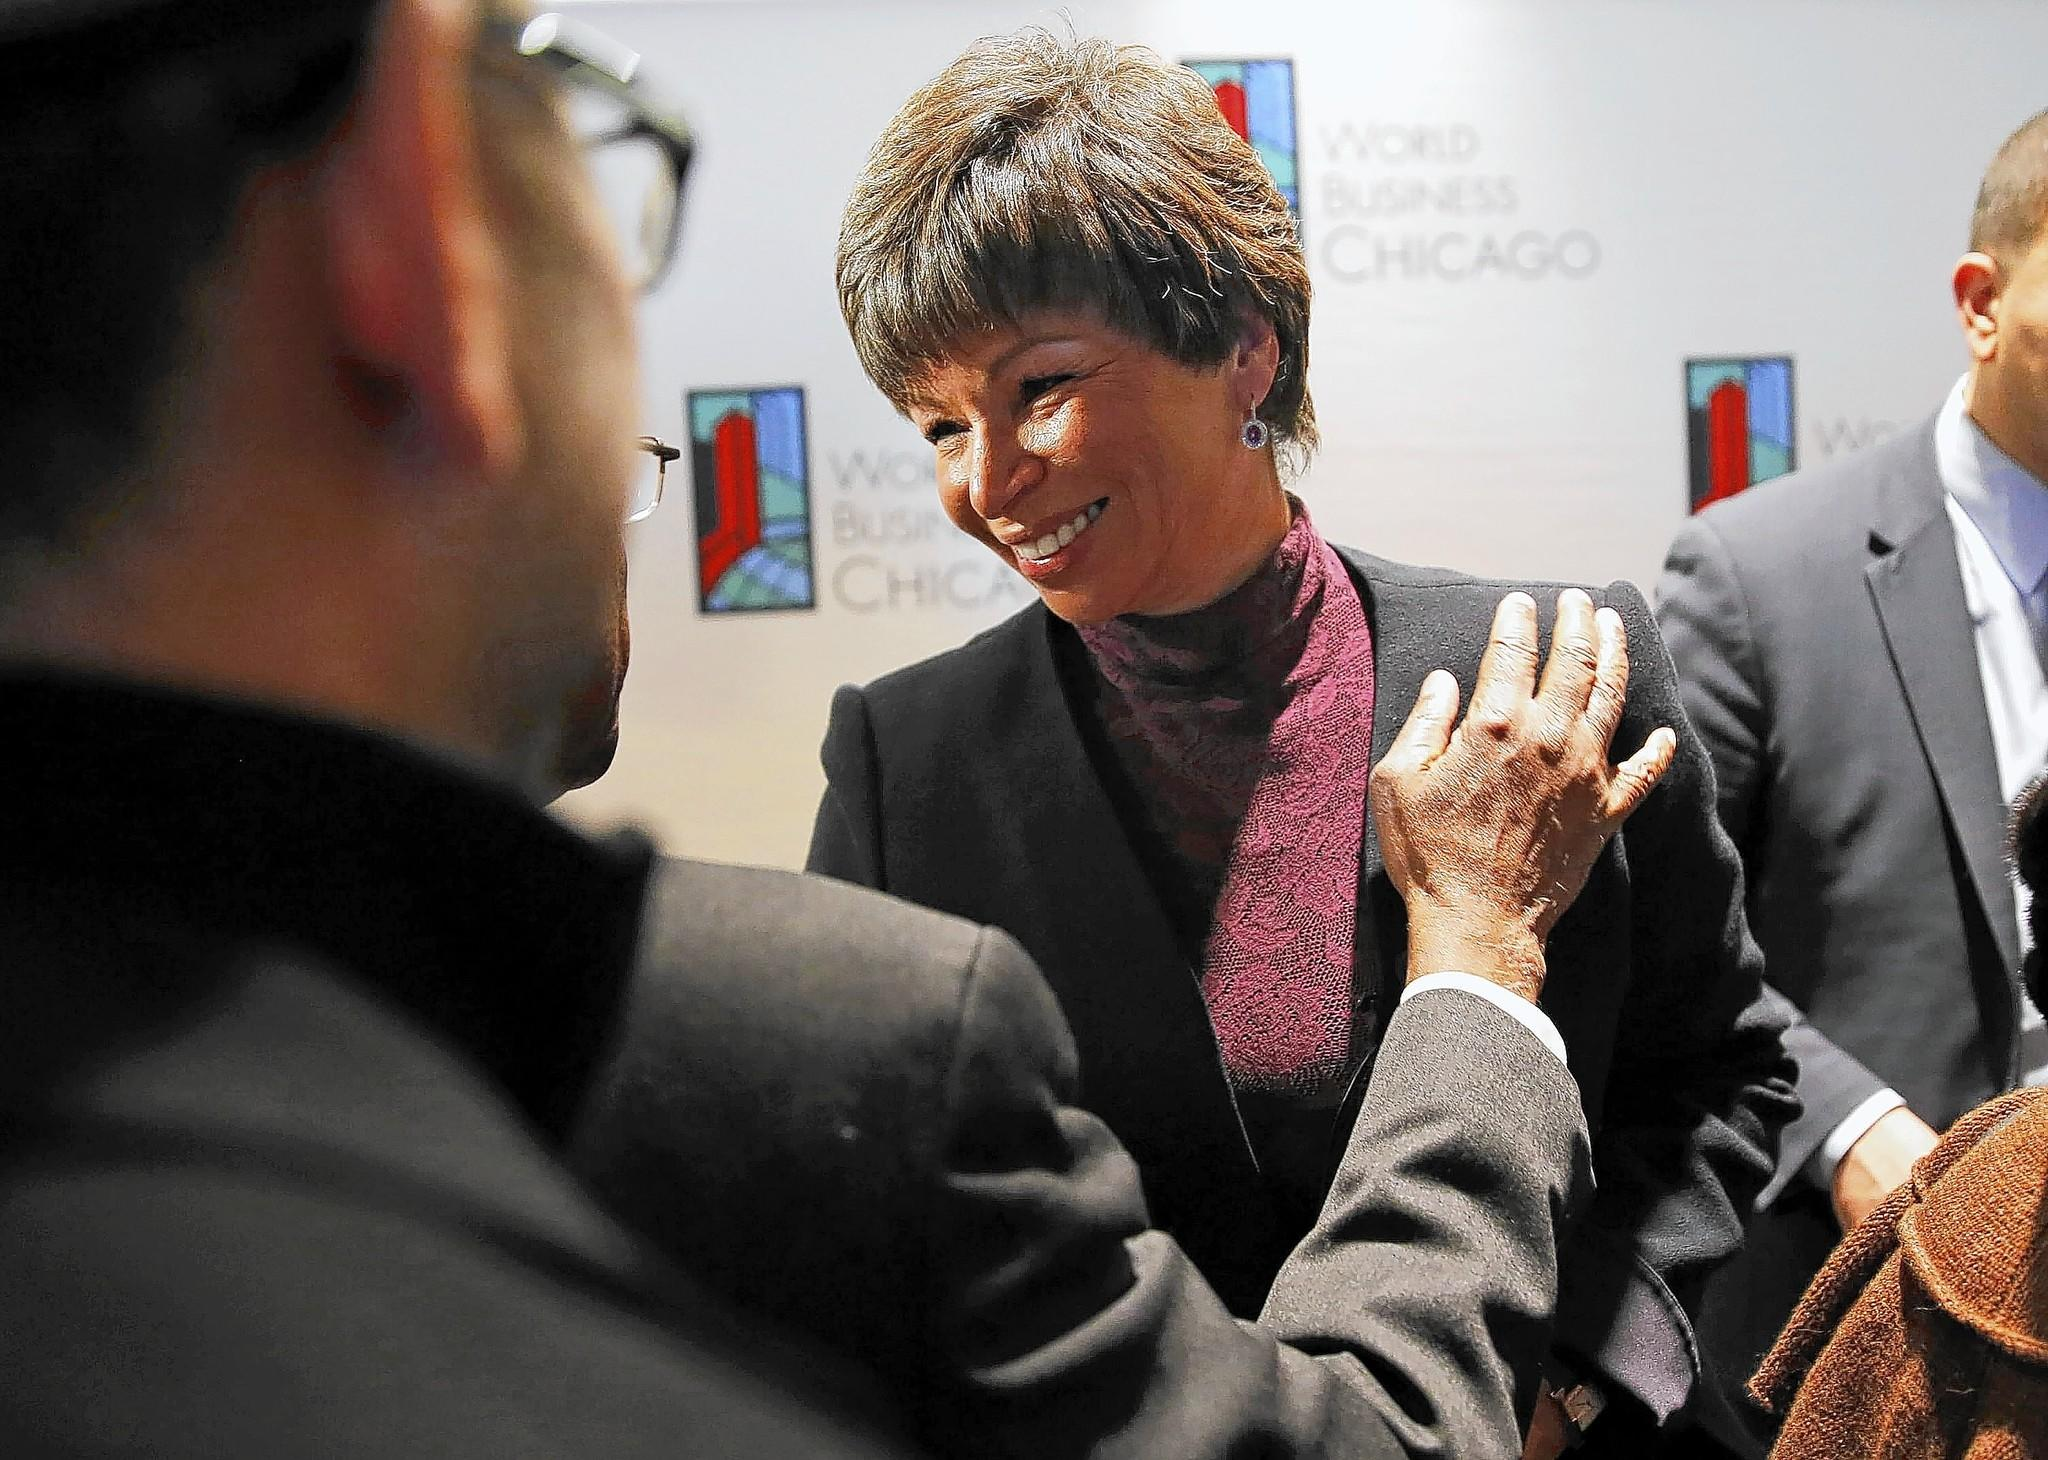 Valerie Jarrett, an adviser to President Barack Obama, took John Kass' seat ever so briefly while he was away.